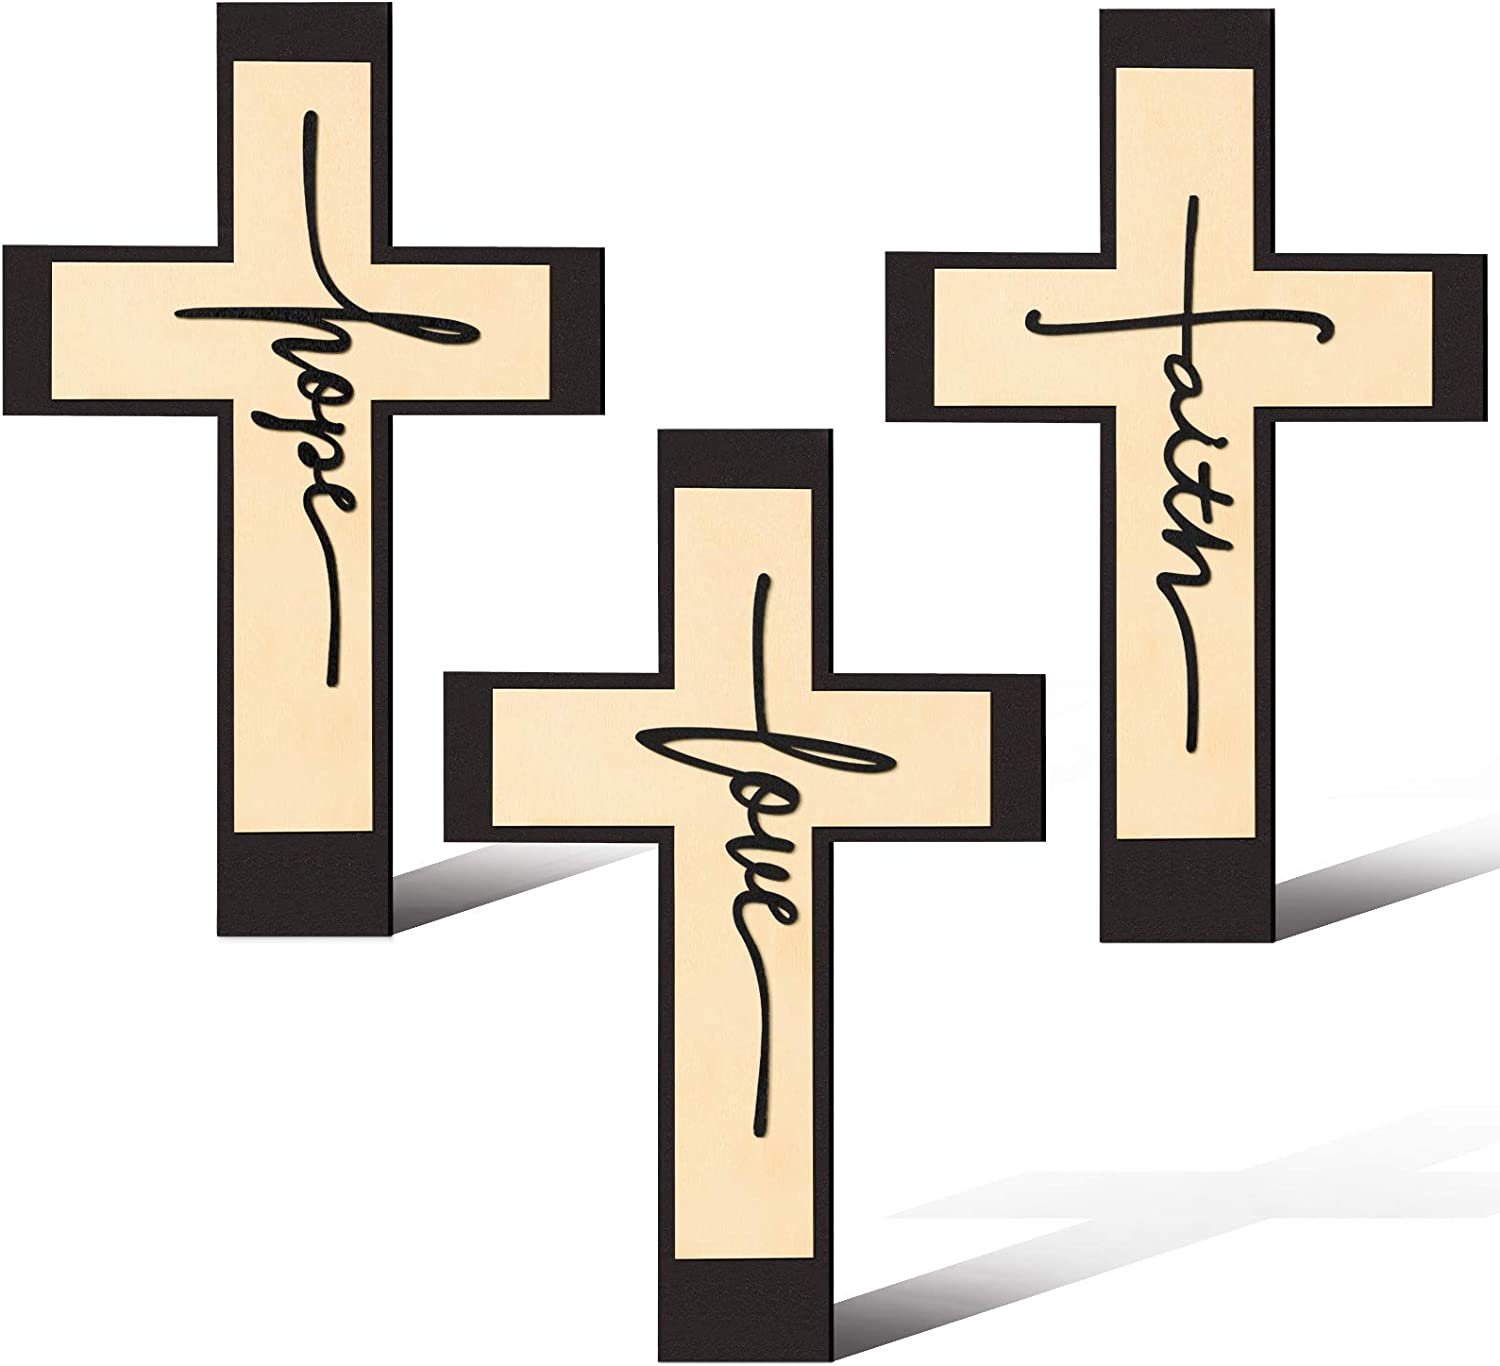 3 Pieces Rustic Cross Wooden Wall Decor Faith Cross Wooden Sign Love Hanging Wood Wall Cross Hope Cross Wall Art Sign Religious Faith Love Hope Wooden Wall Cross for Home Wall Ornaments, 12 x 8 Inch